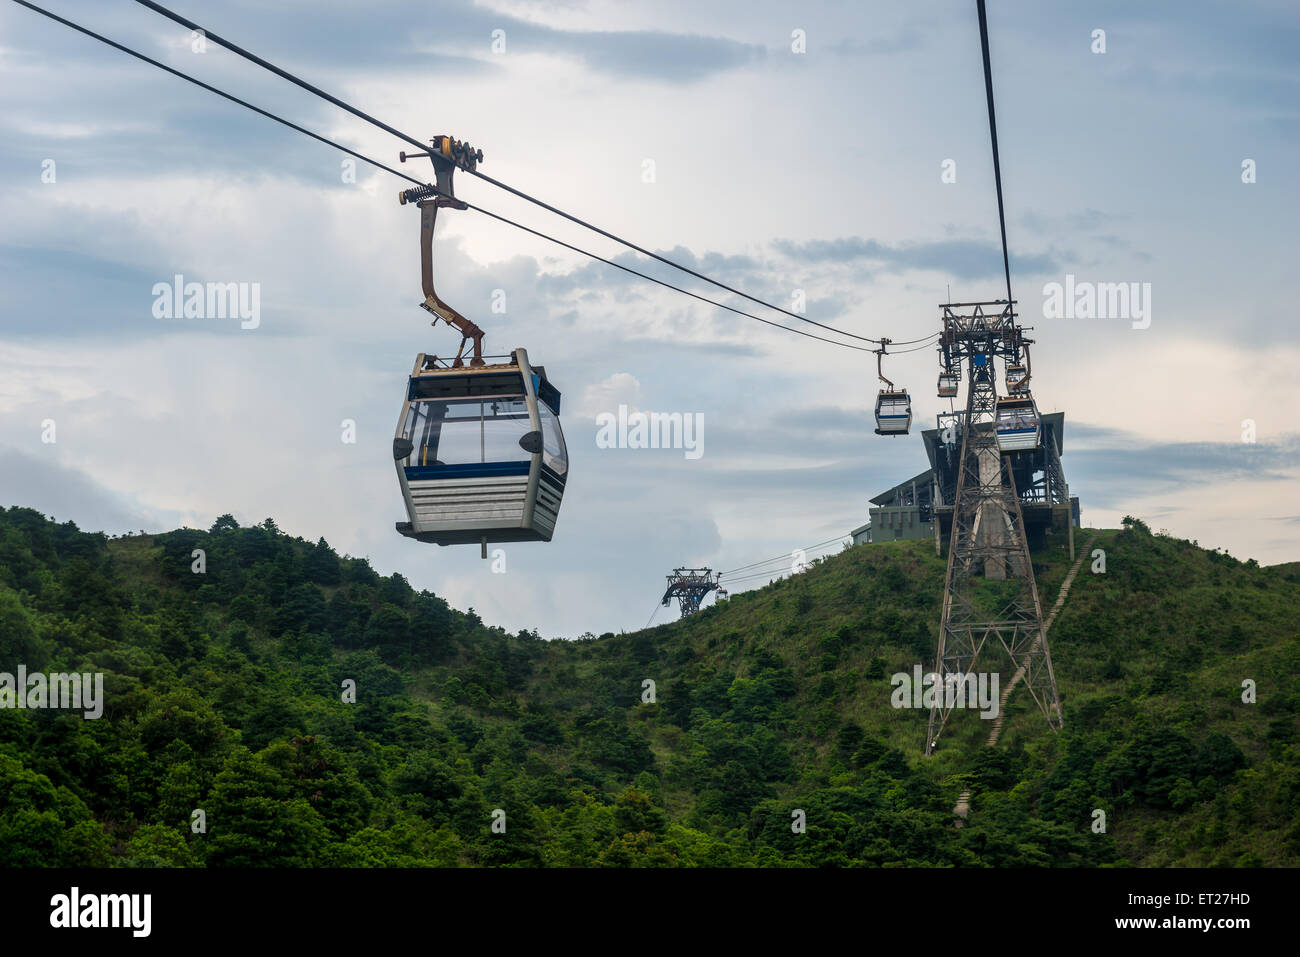 Cable cars rise up over the mountains of Lantau Island in Hong Kong, SAR. - Stock Image